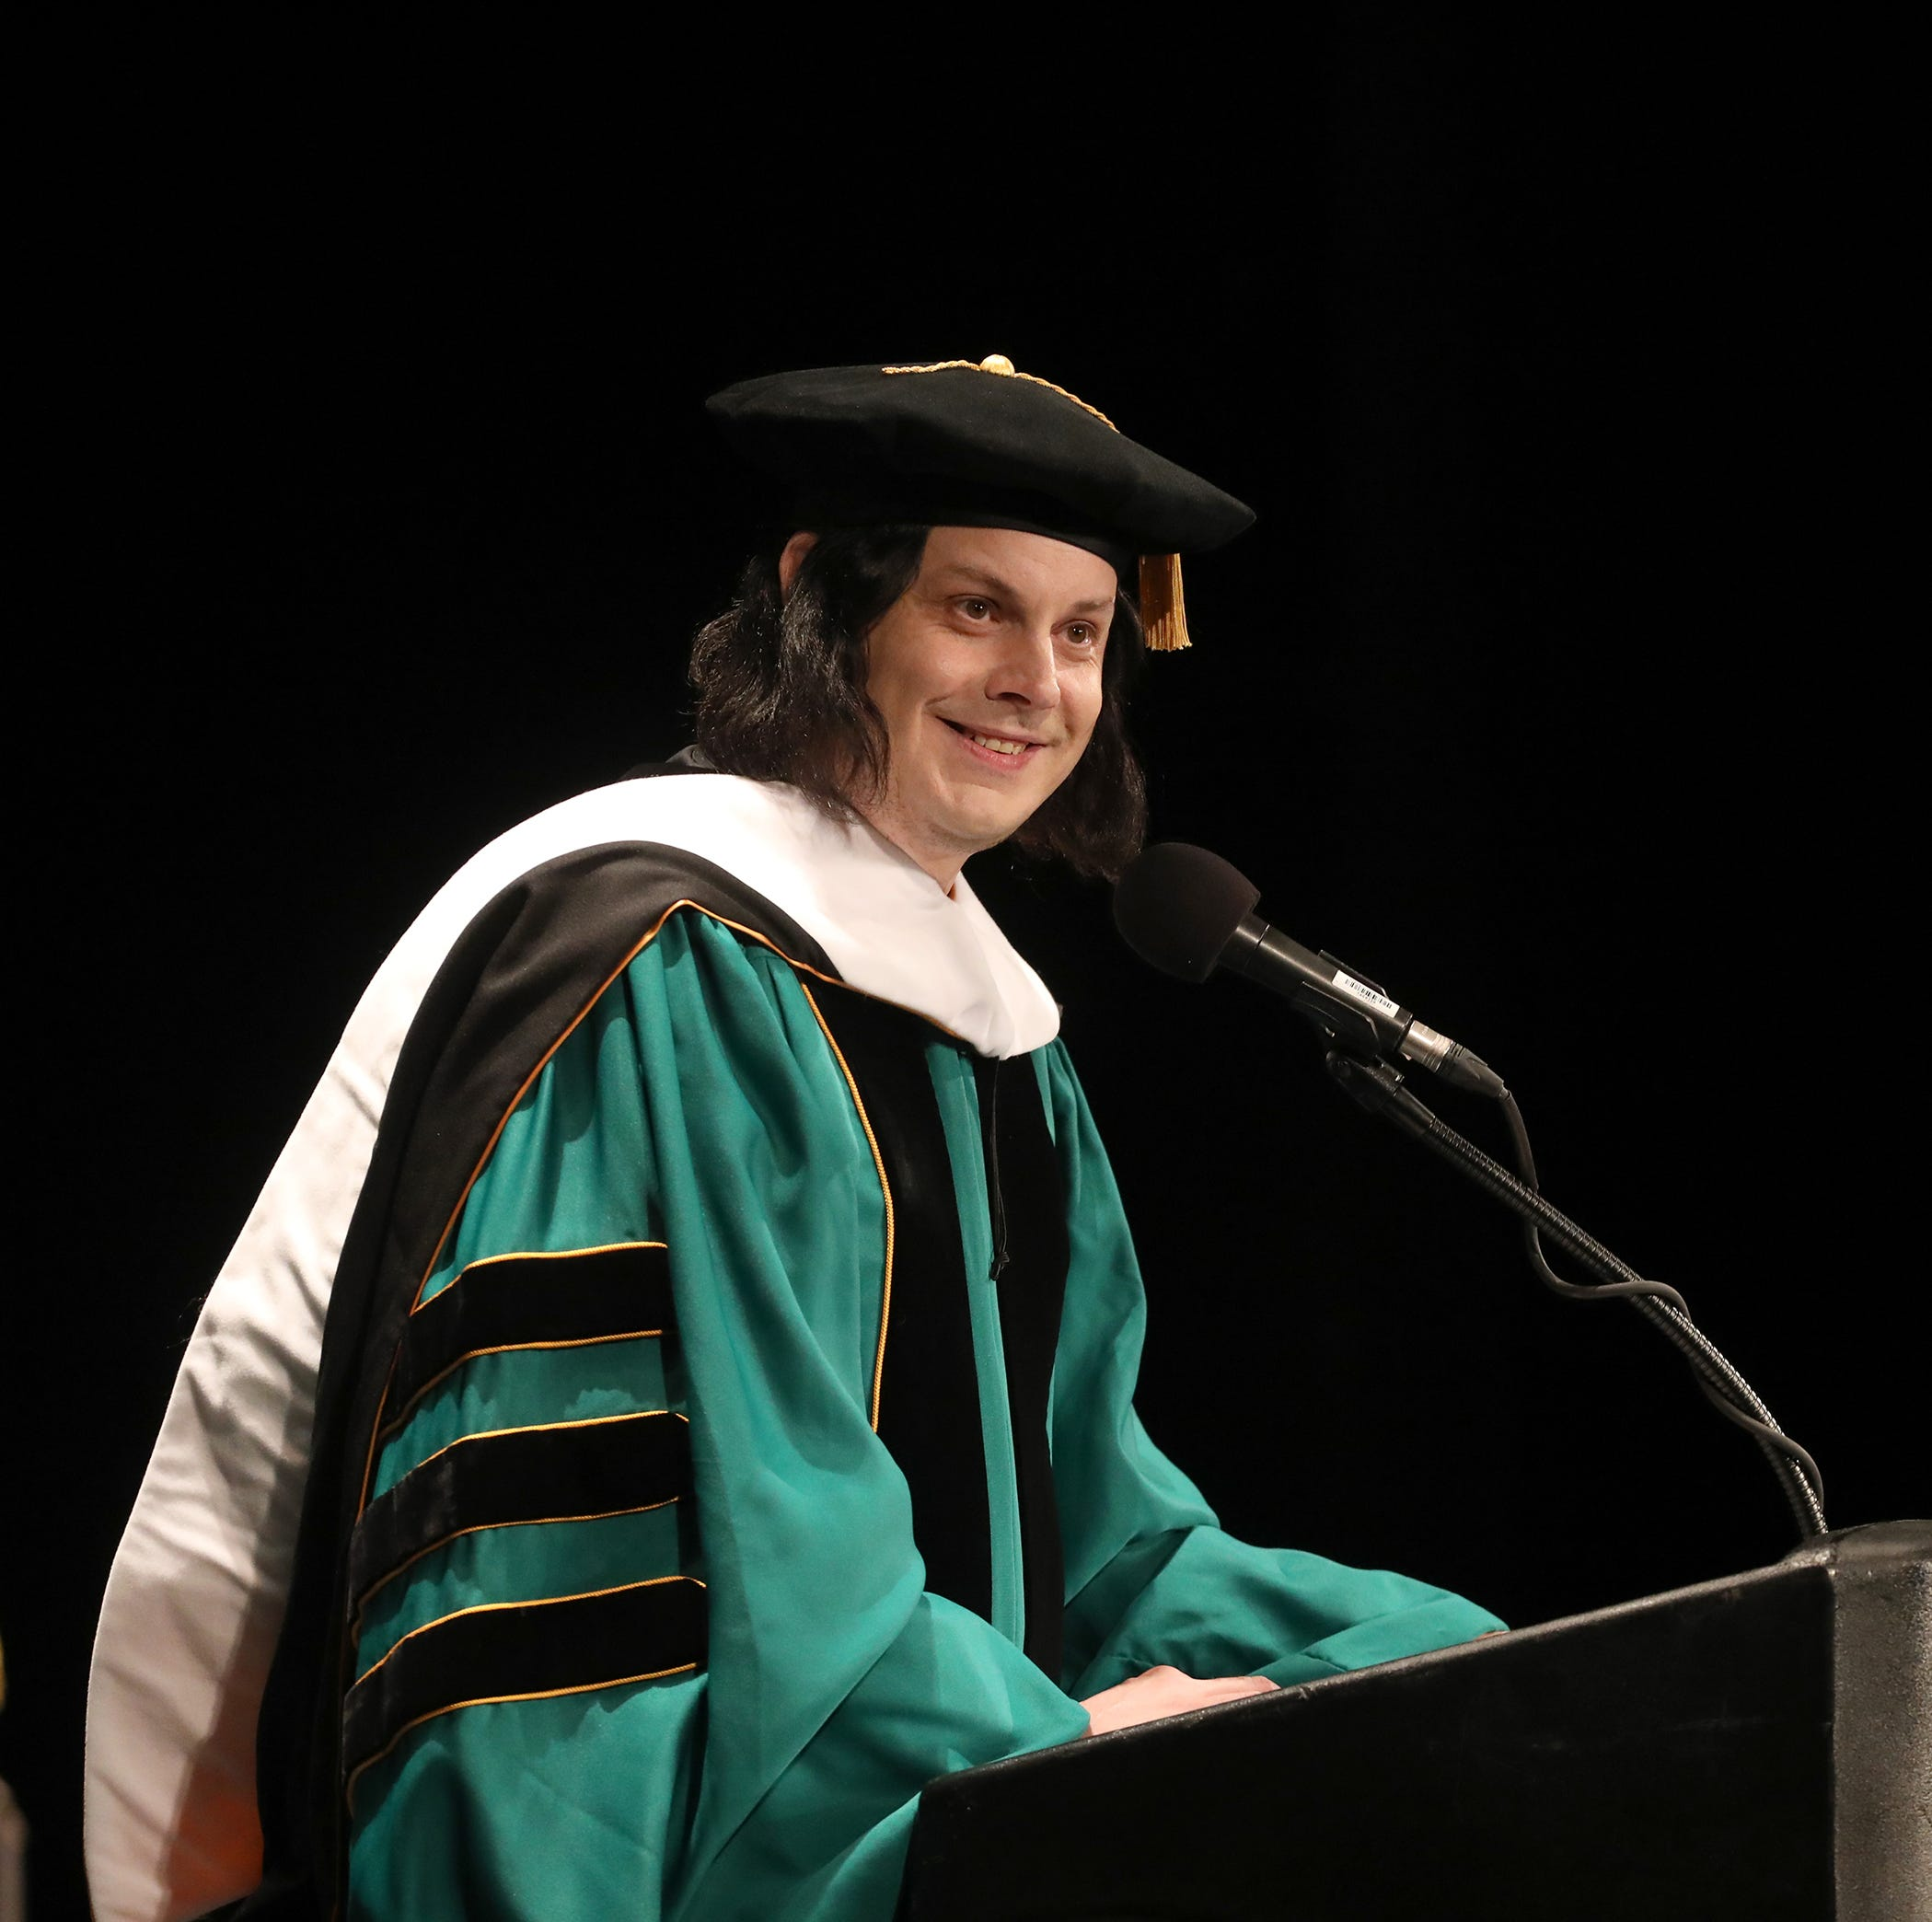 Jack White receives his honorary doctorate from Wayne State: 'absolutely incredible'